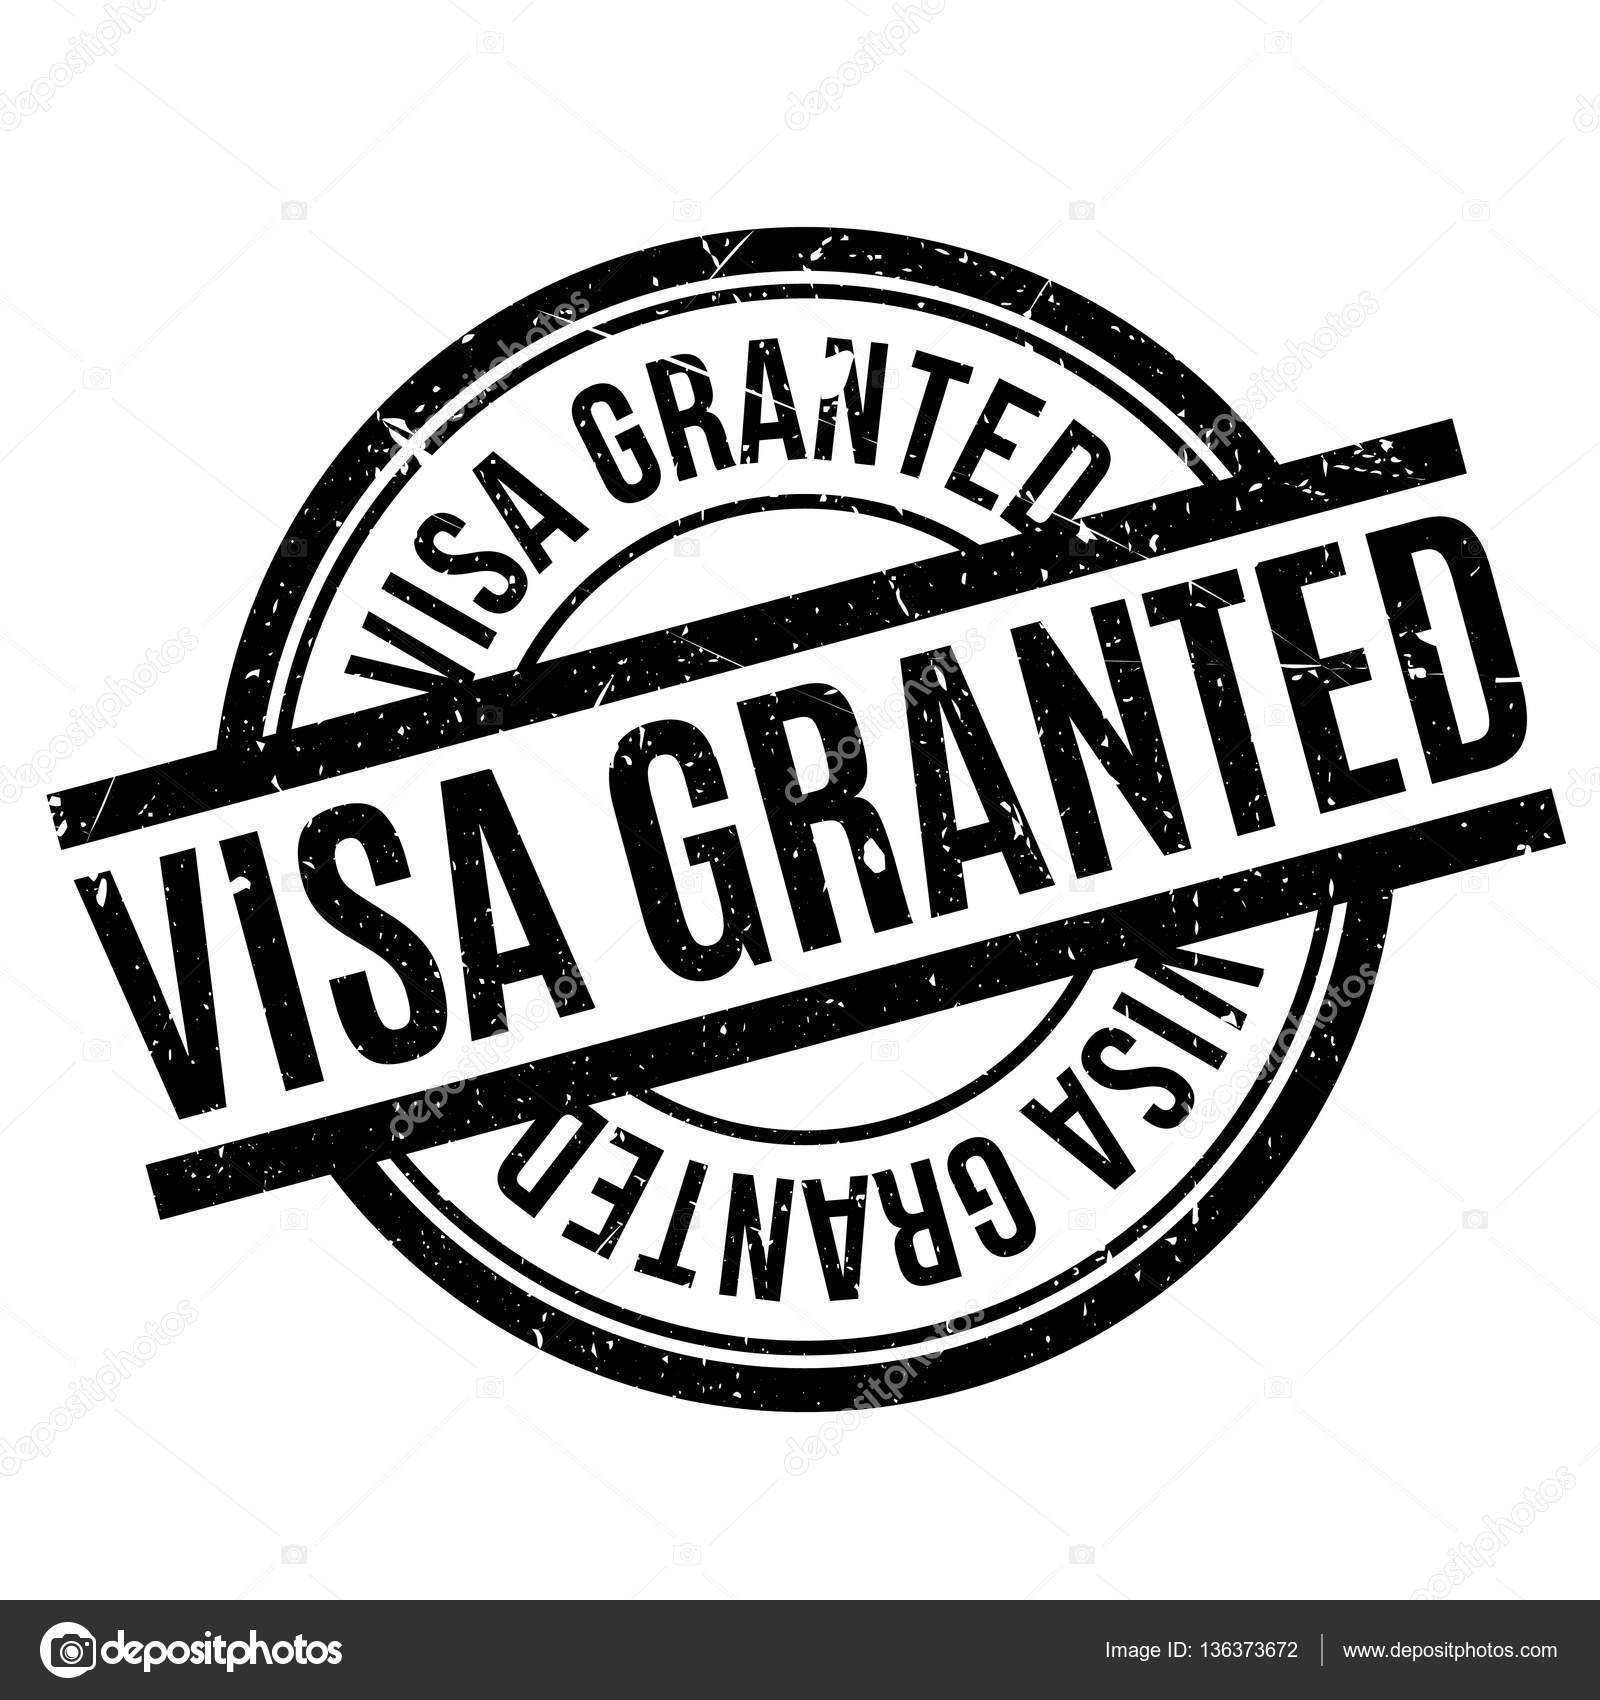 Visa granted rubber stamp stock vector lkeskinen0 136373672 visa granted rubber stamp stock vector biocorpaavc Choice Image